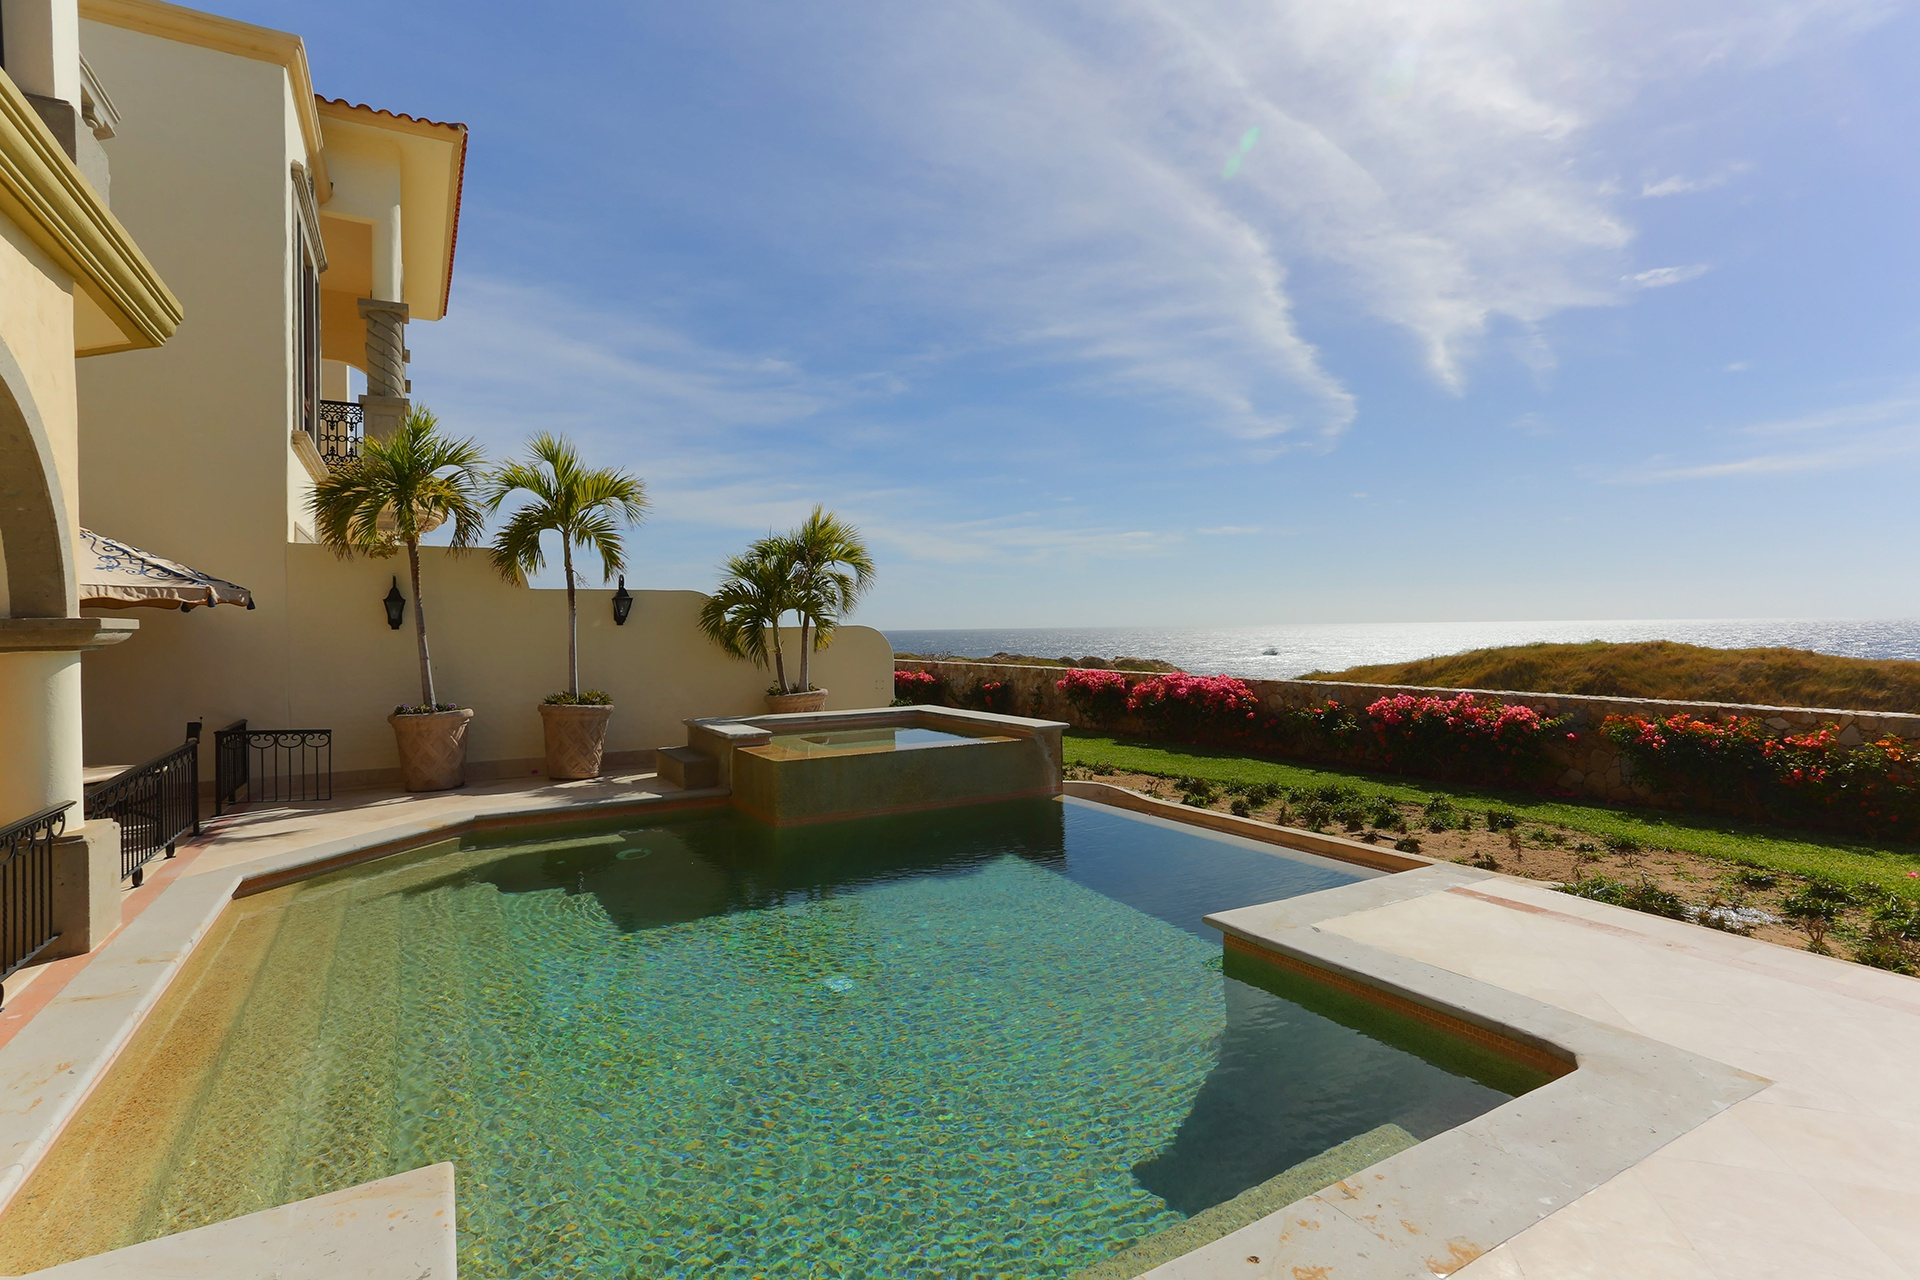 The legendary resort town of Cabo San Lucas sets the stage for Villa Canario, an elegant, fully furnished villa with a pool and spa, and access to world-class golf.